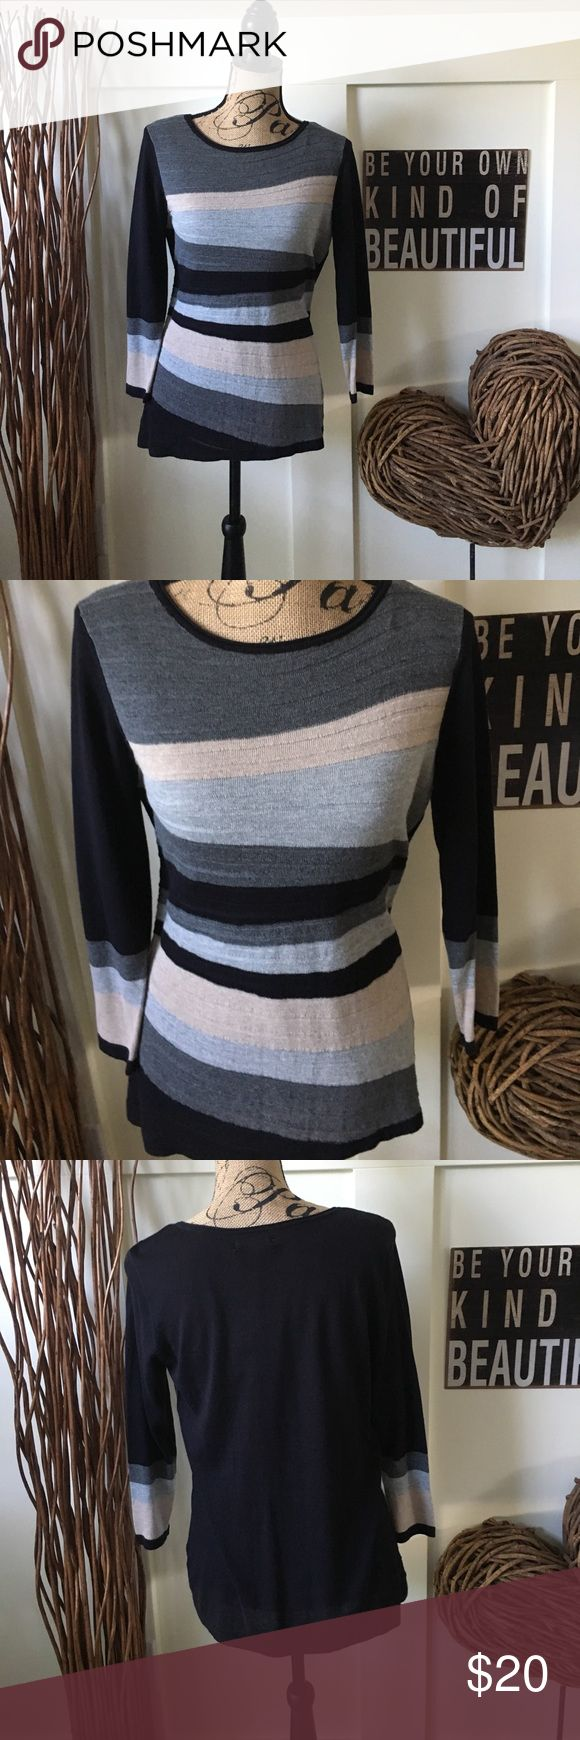 Dana Buckman expressive lines knit top Dana Buchman three-quarter length sleeve, knit top has a scoopneck and geometric stripes that are very flattering to your figure. This top looks great with your favorite pencil skirt or trousers. Dana Buchman Tops